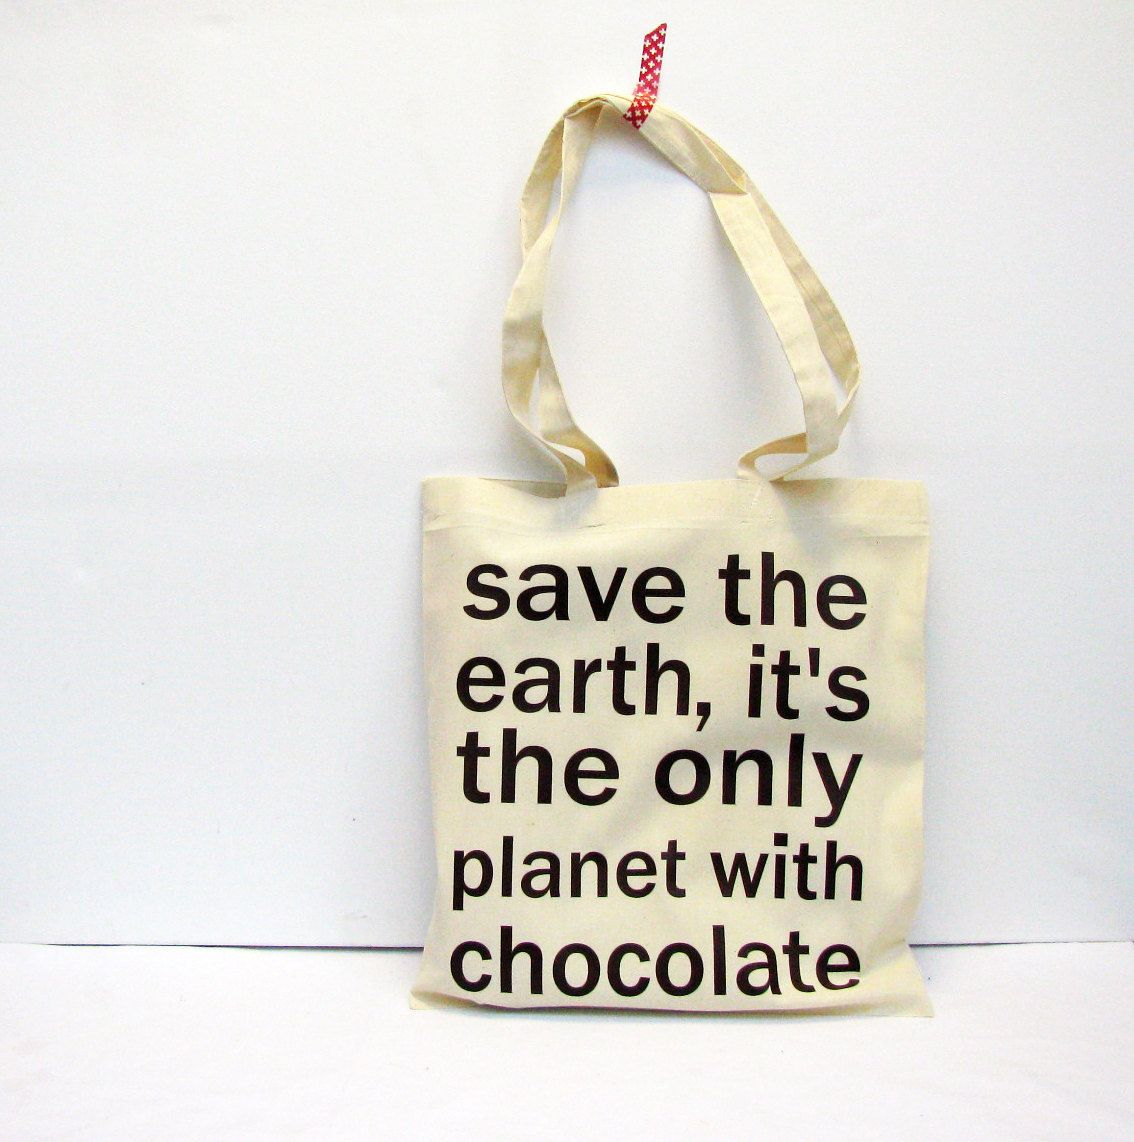 2936cdb9f985 Chocolate quote bag - save the earth it s the only planet with chocolate -  reusable shopping bag.